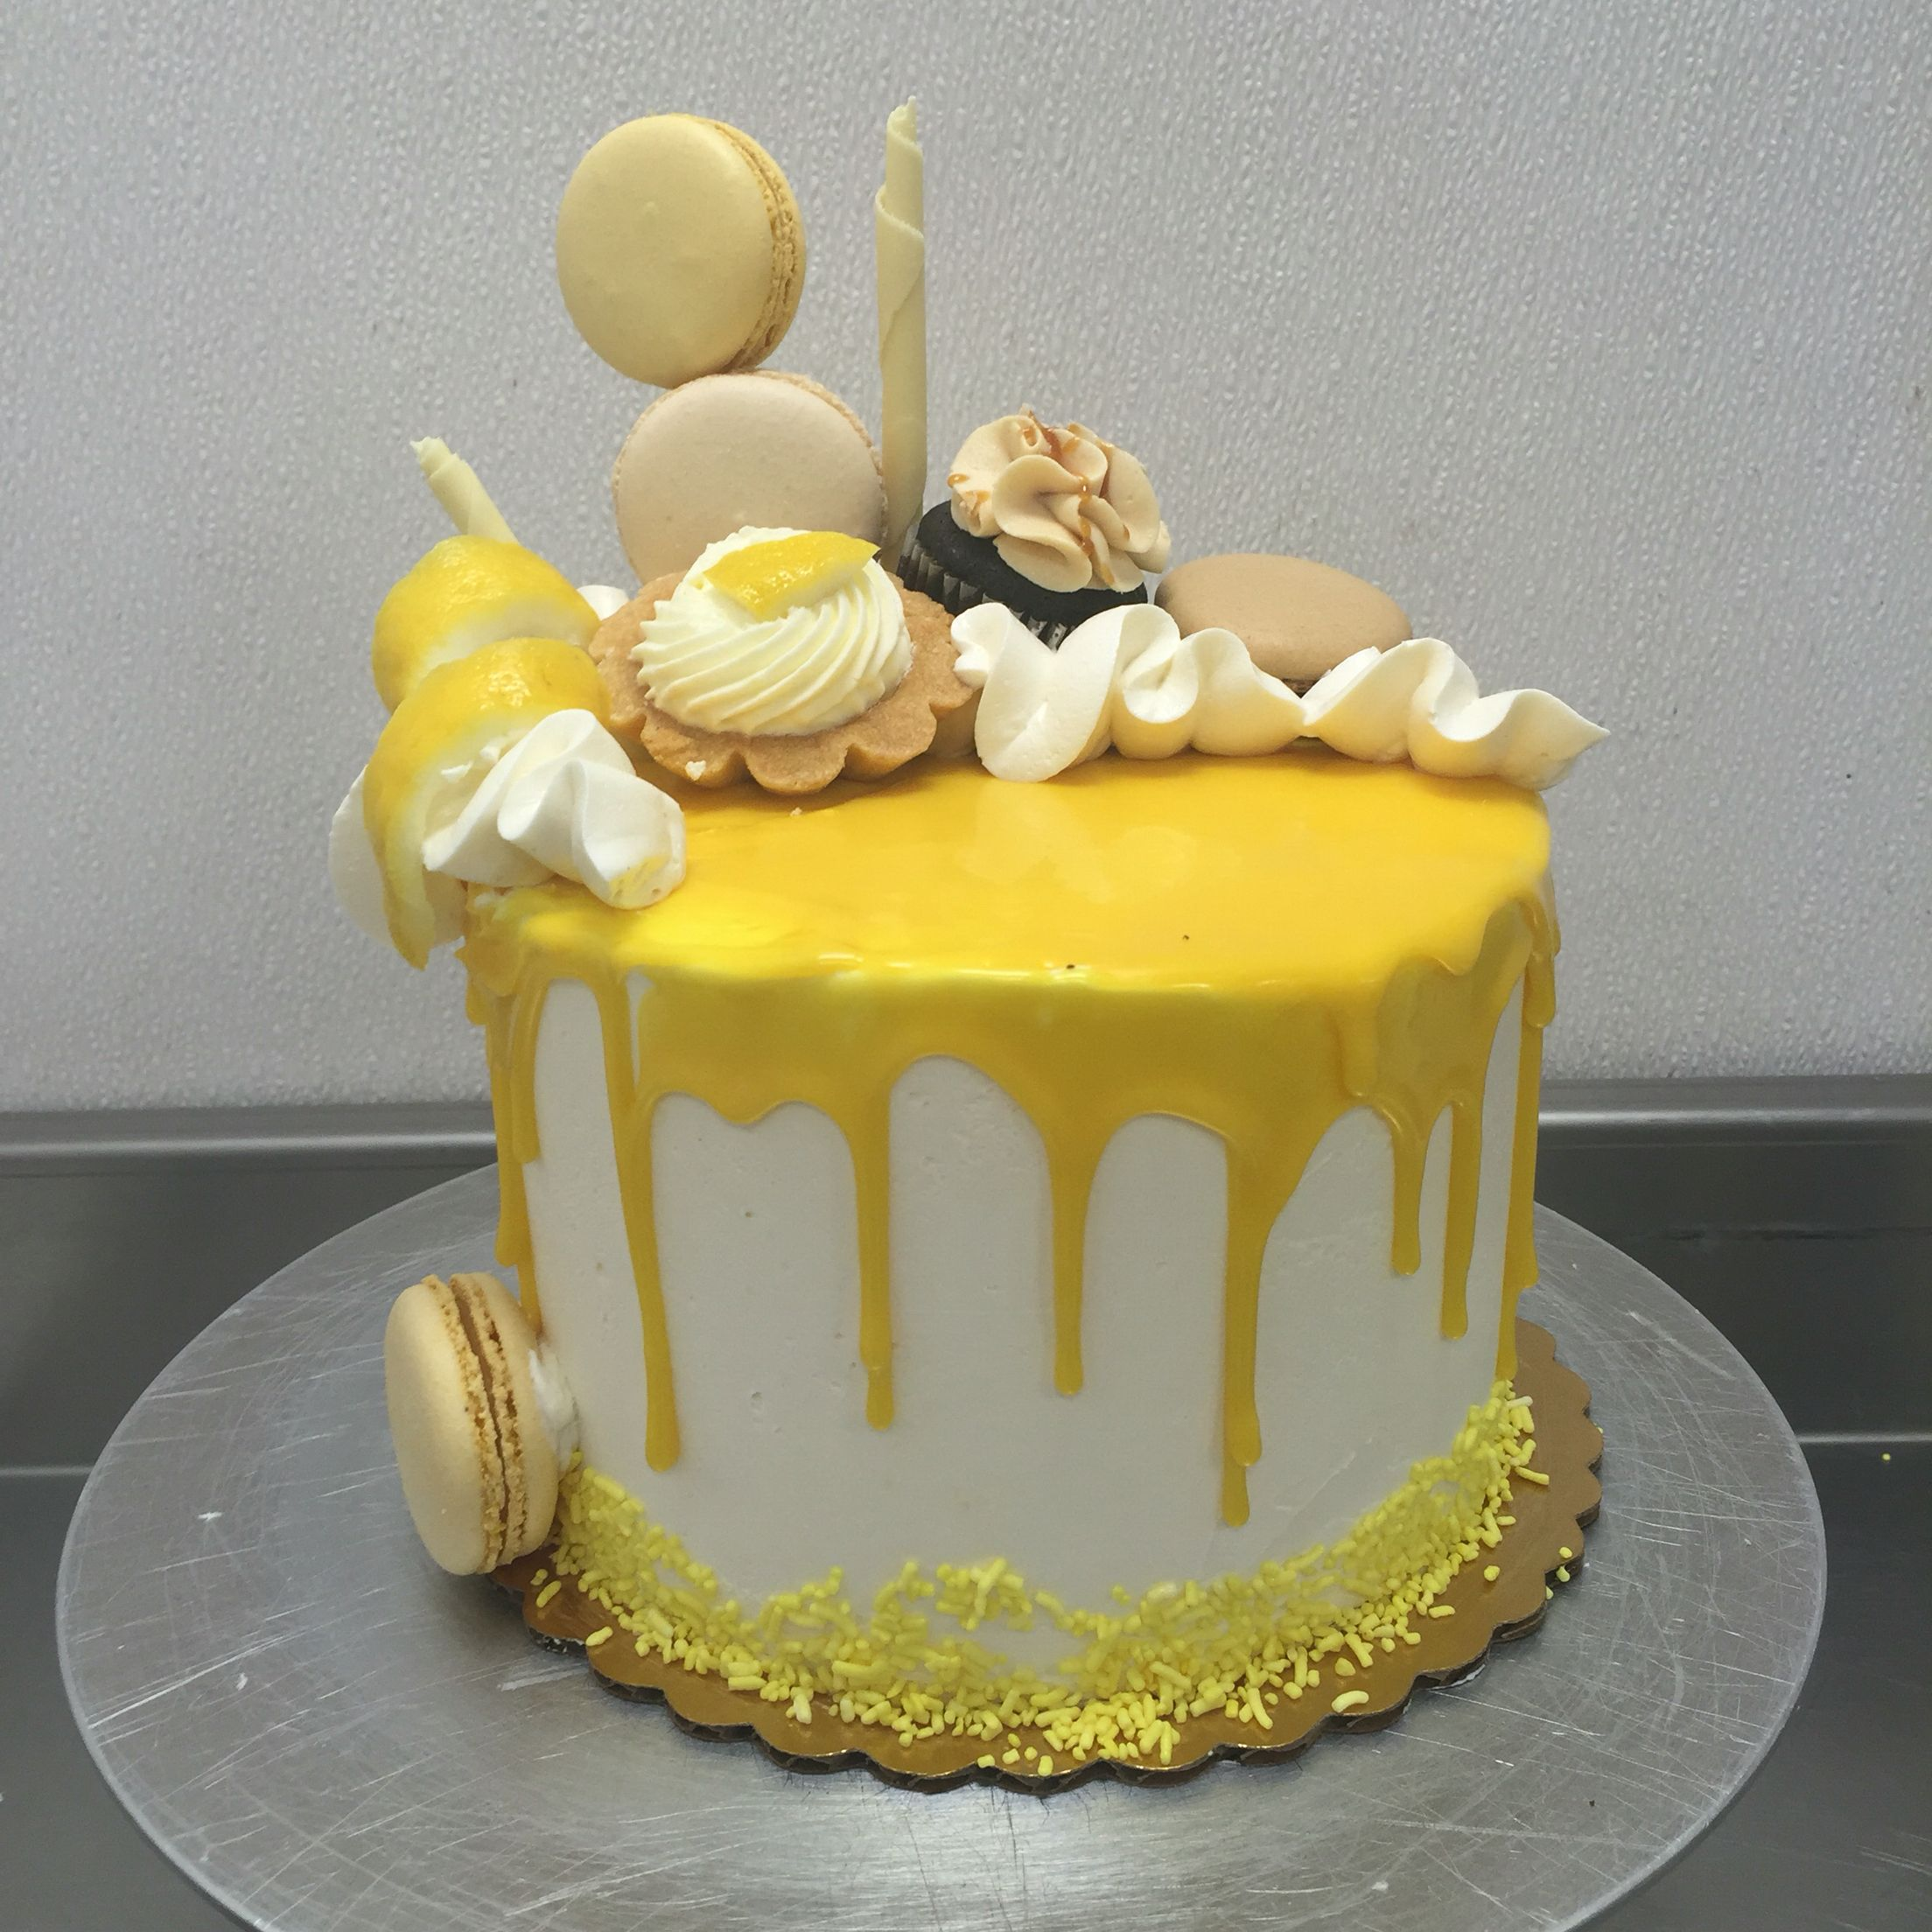 Lemon Sponge Cake With White Chocolate Icing